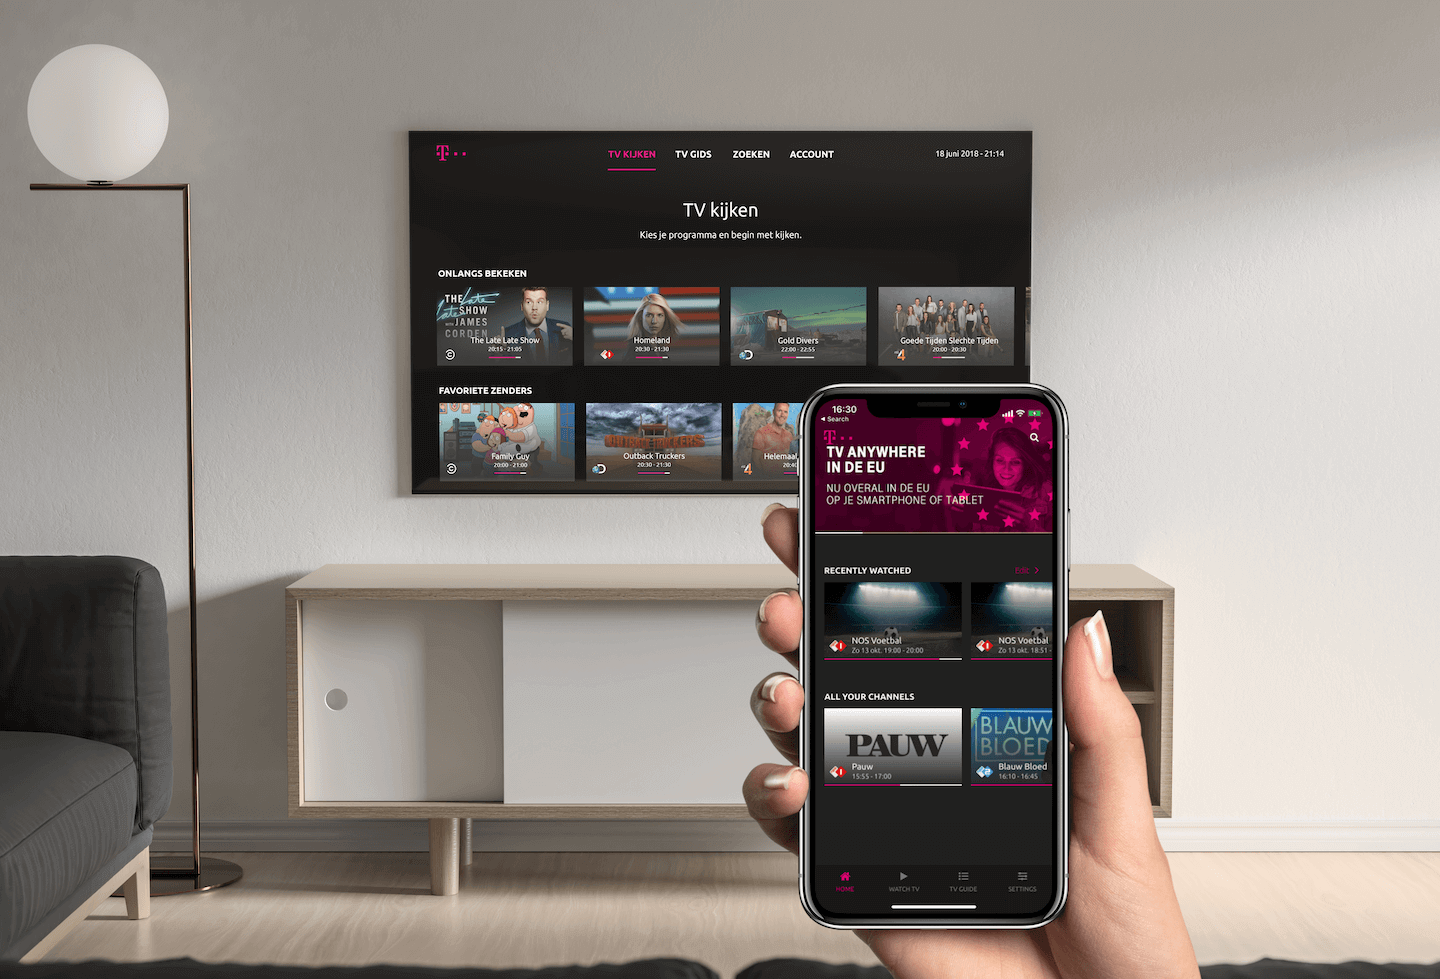 TV Anywhere App